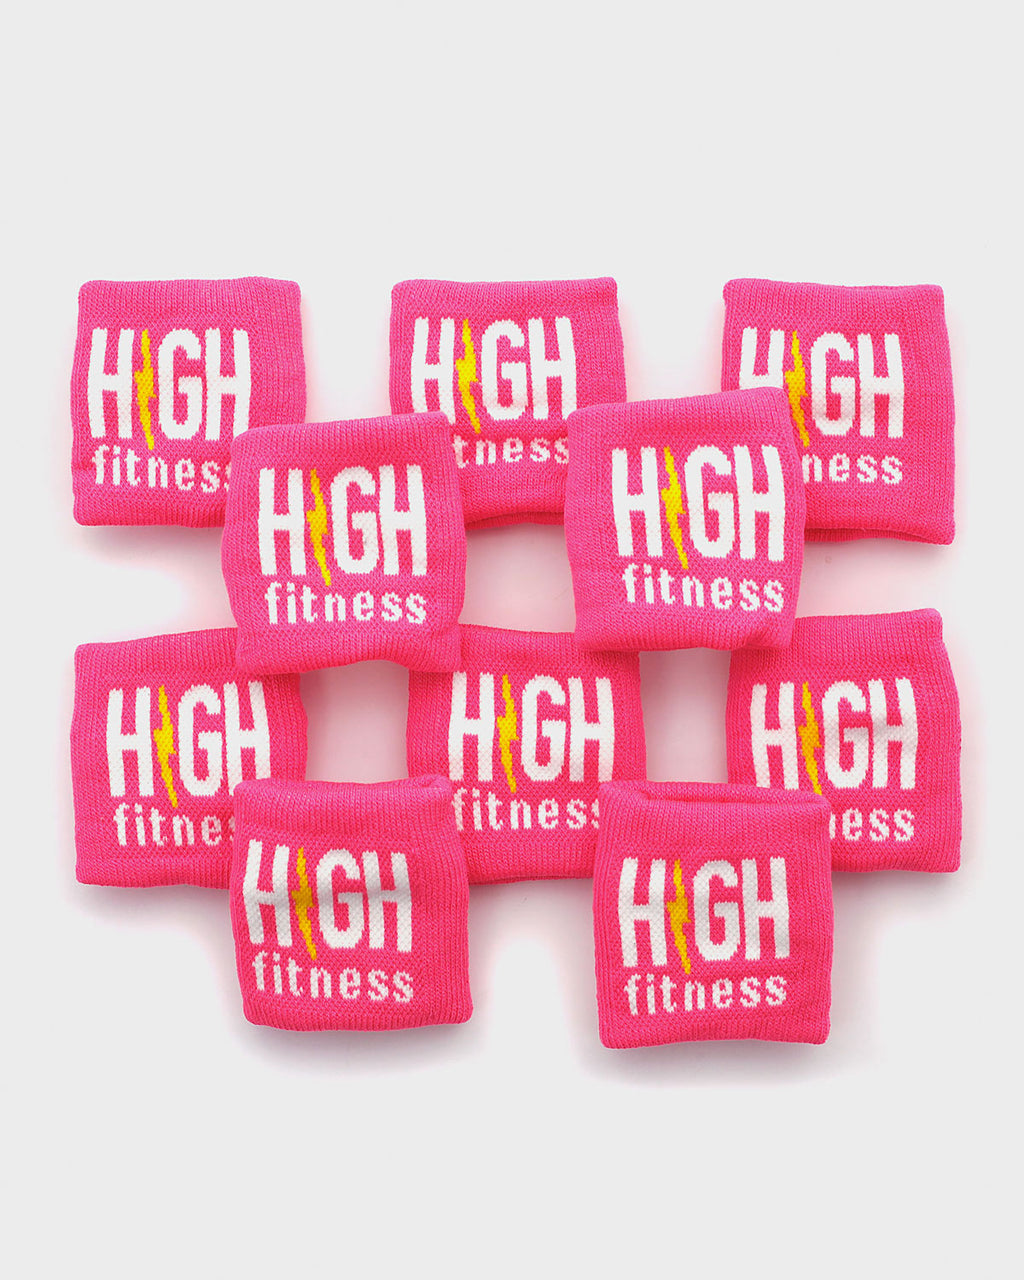 Pink High Fitness Sweatbands -10 Pack